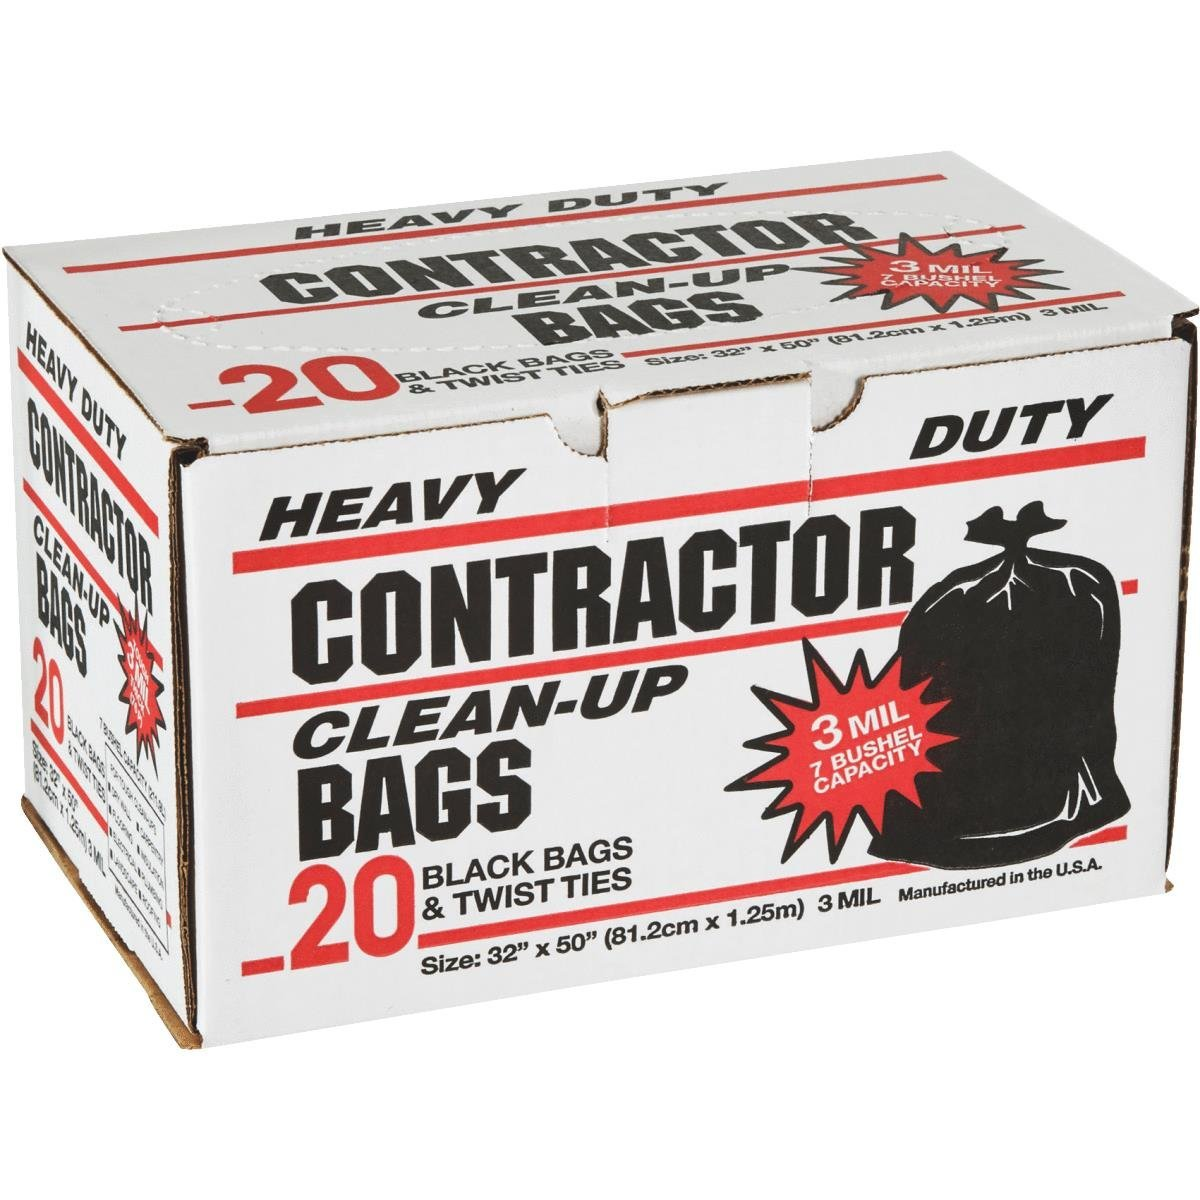 20CT CONTRACTOR BAGS